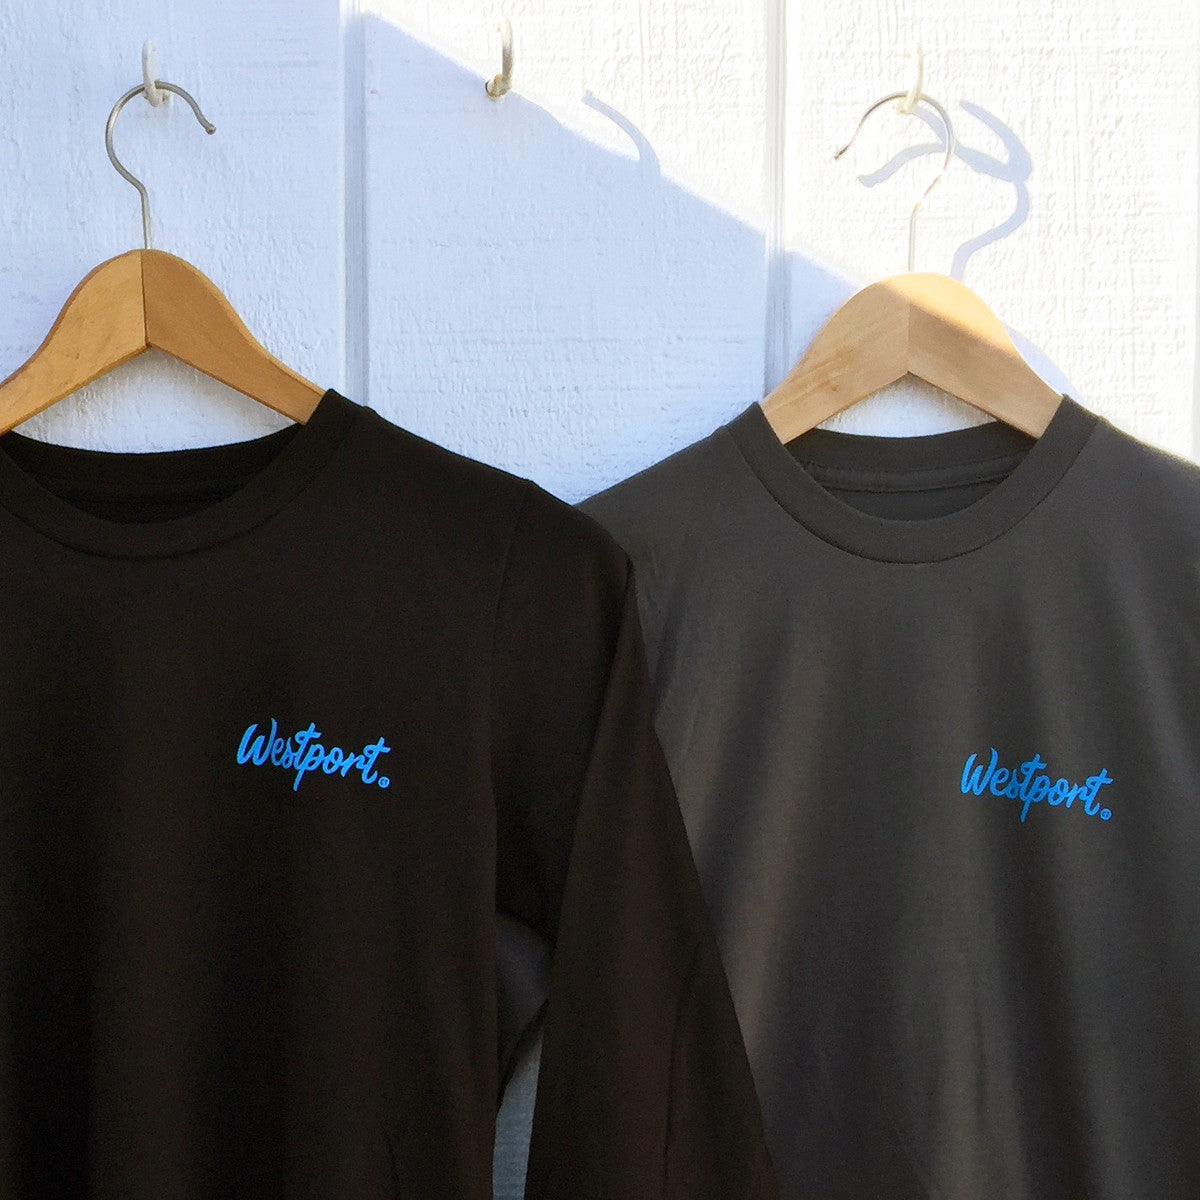 Westport T-Shirts by Townee - Saugatuck Long Sleeve Tee (front)